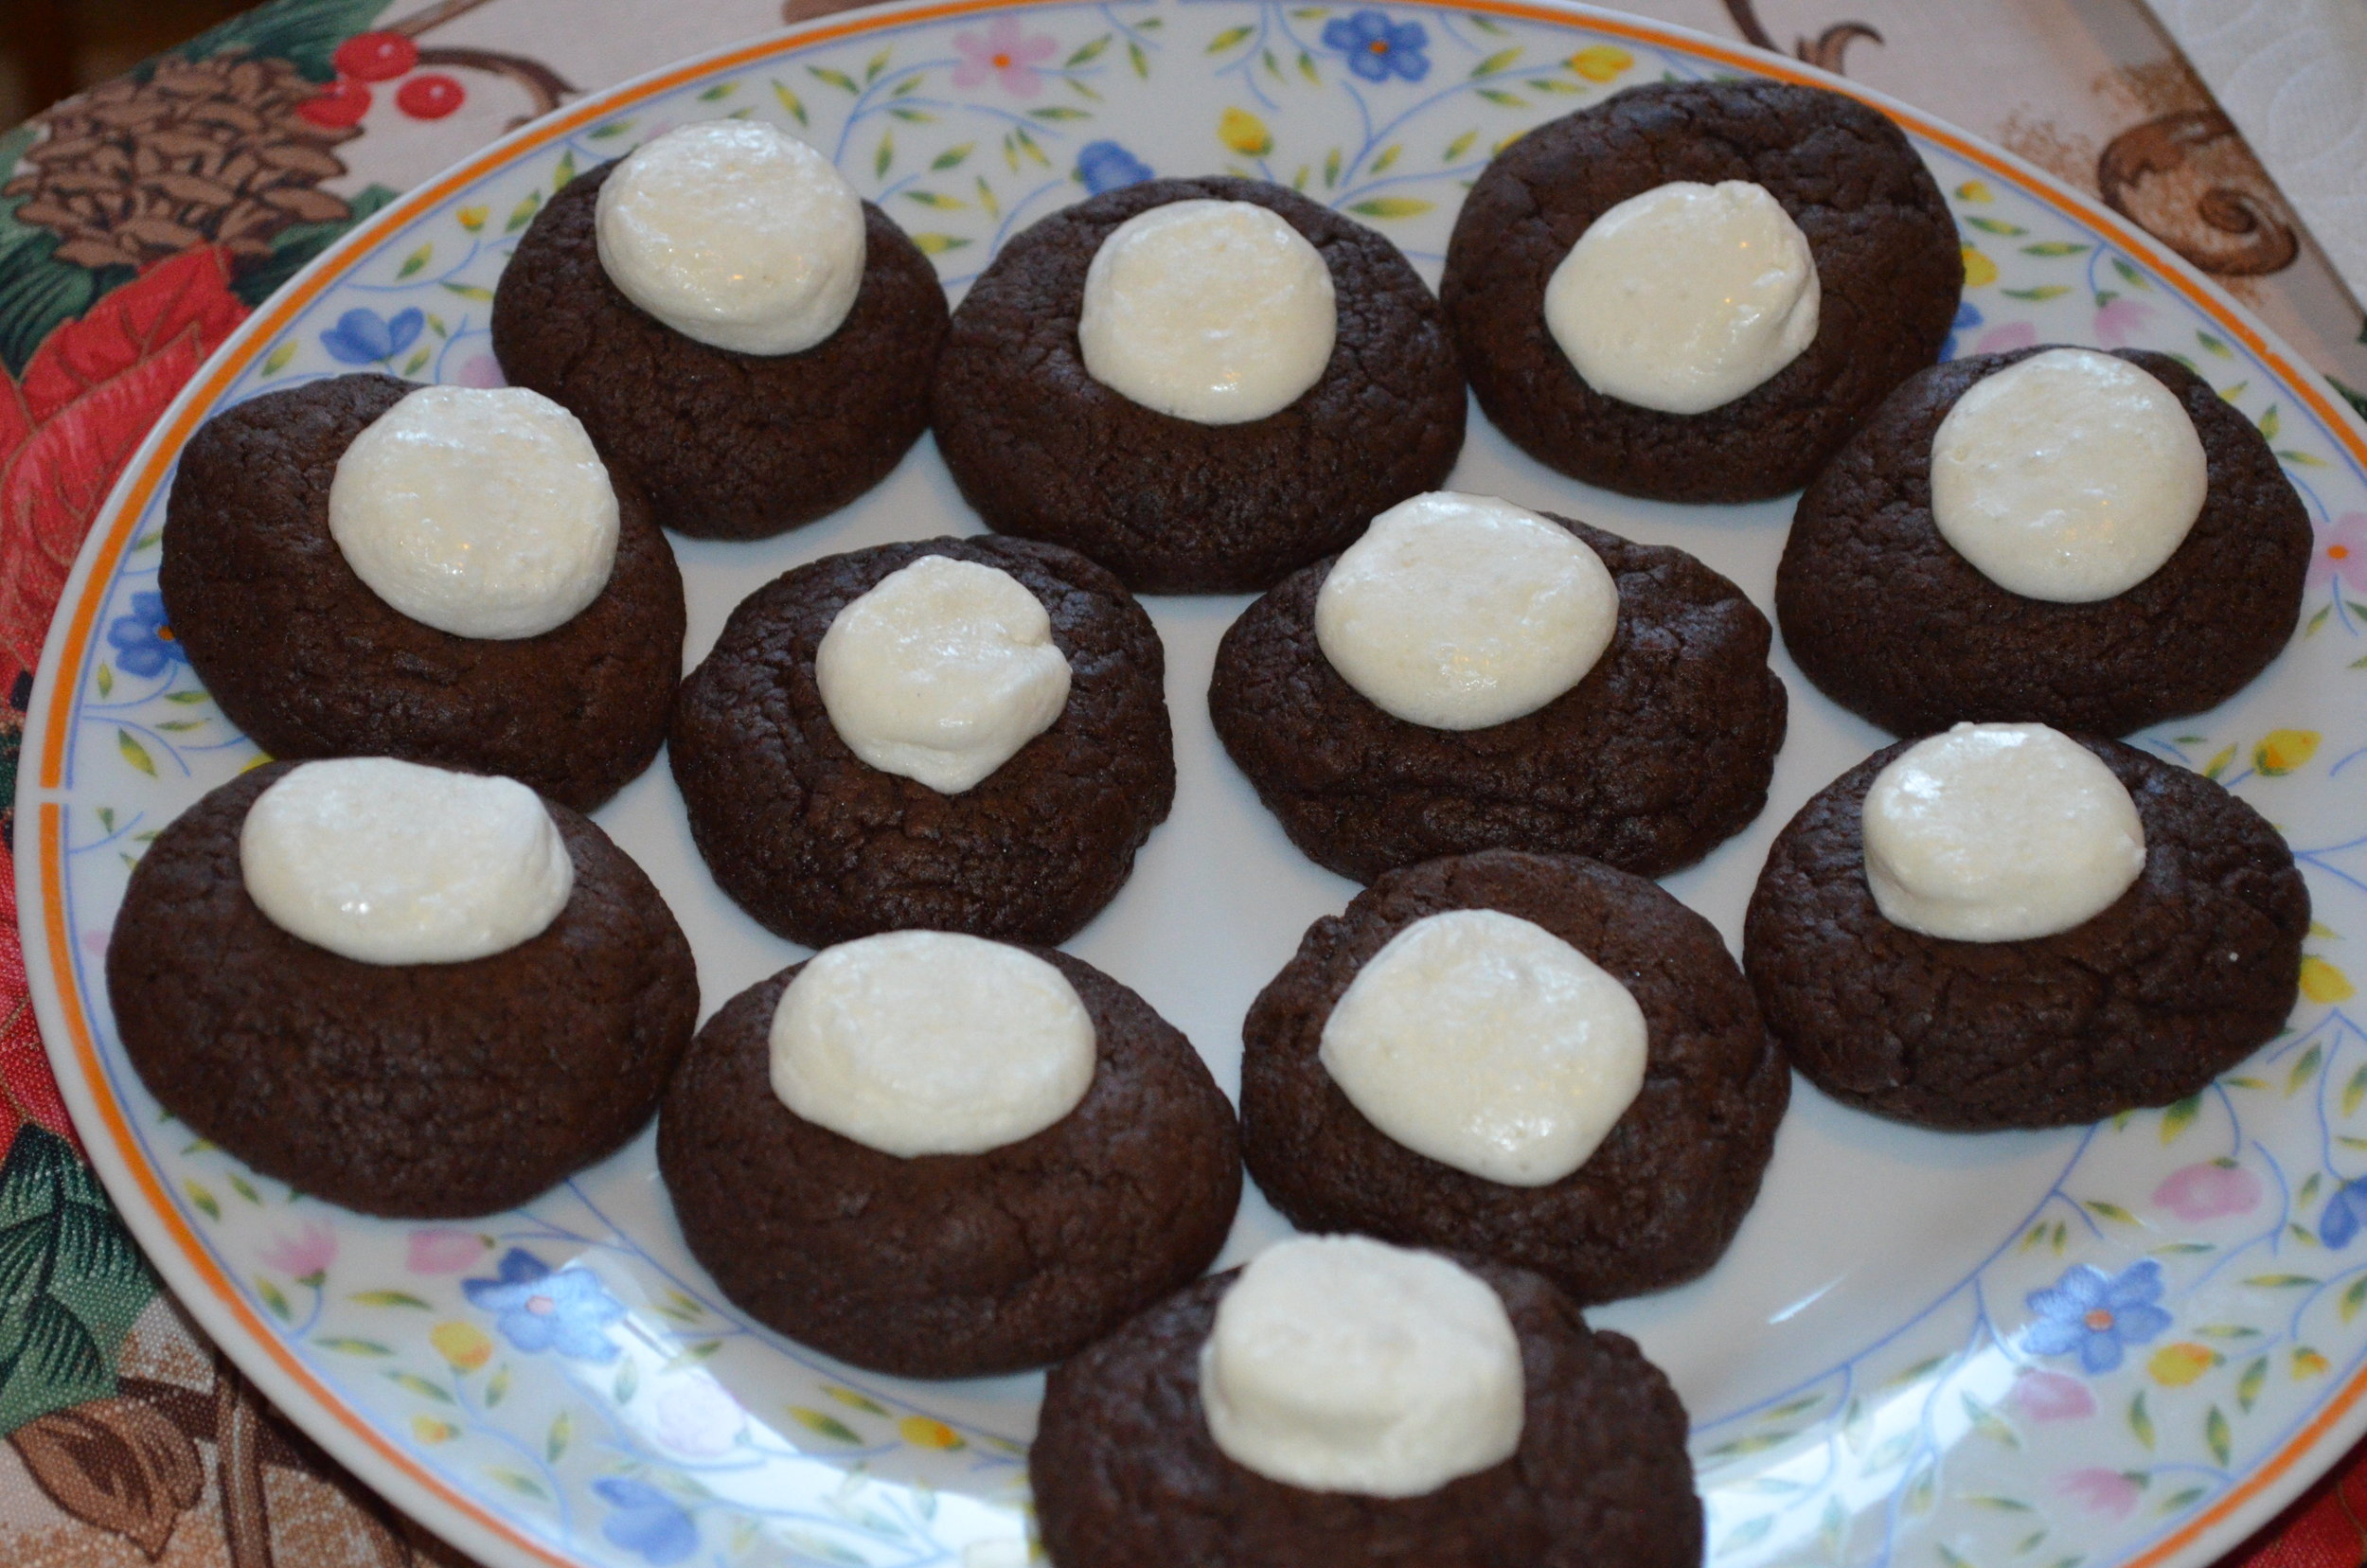 And there you have it, hot cocoa cookies! Yum!